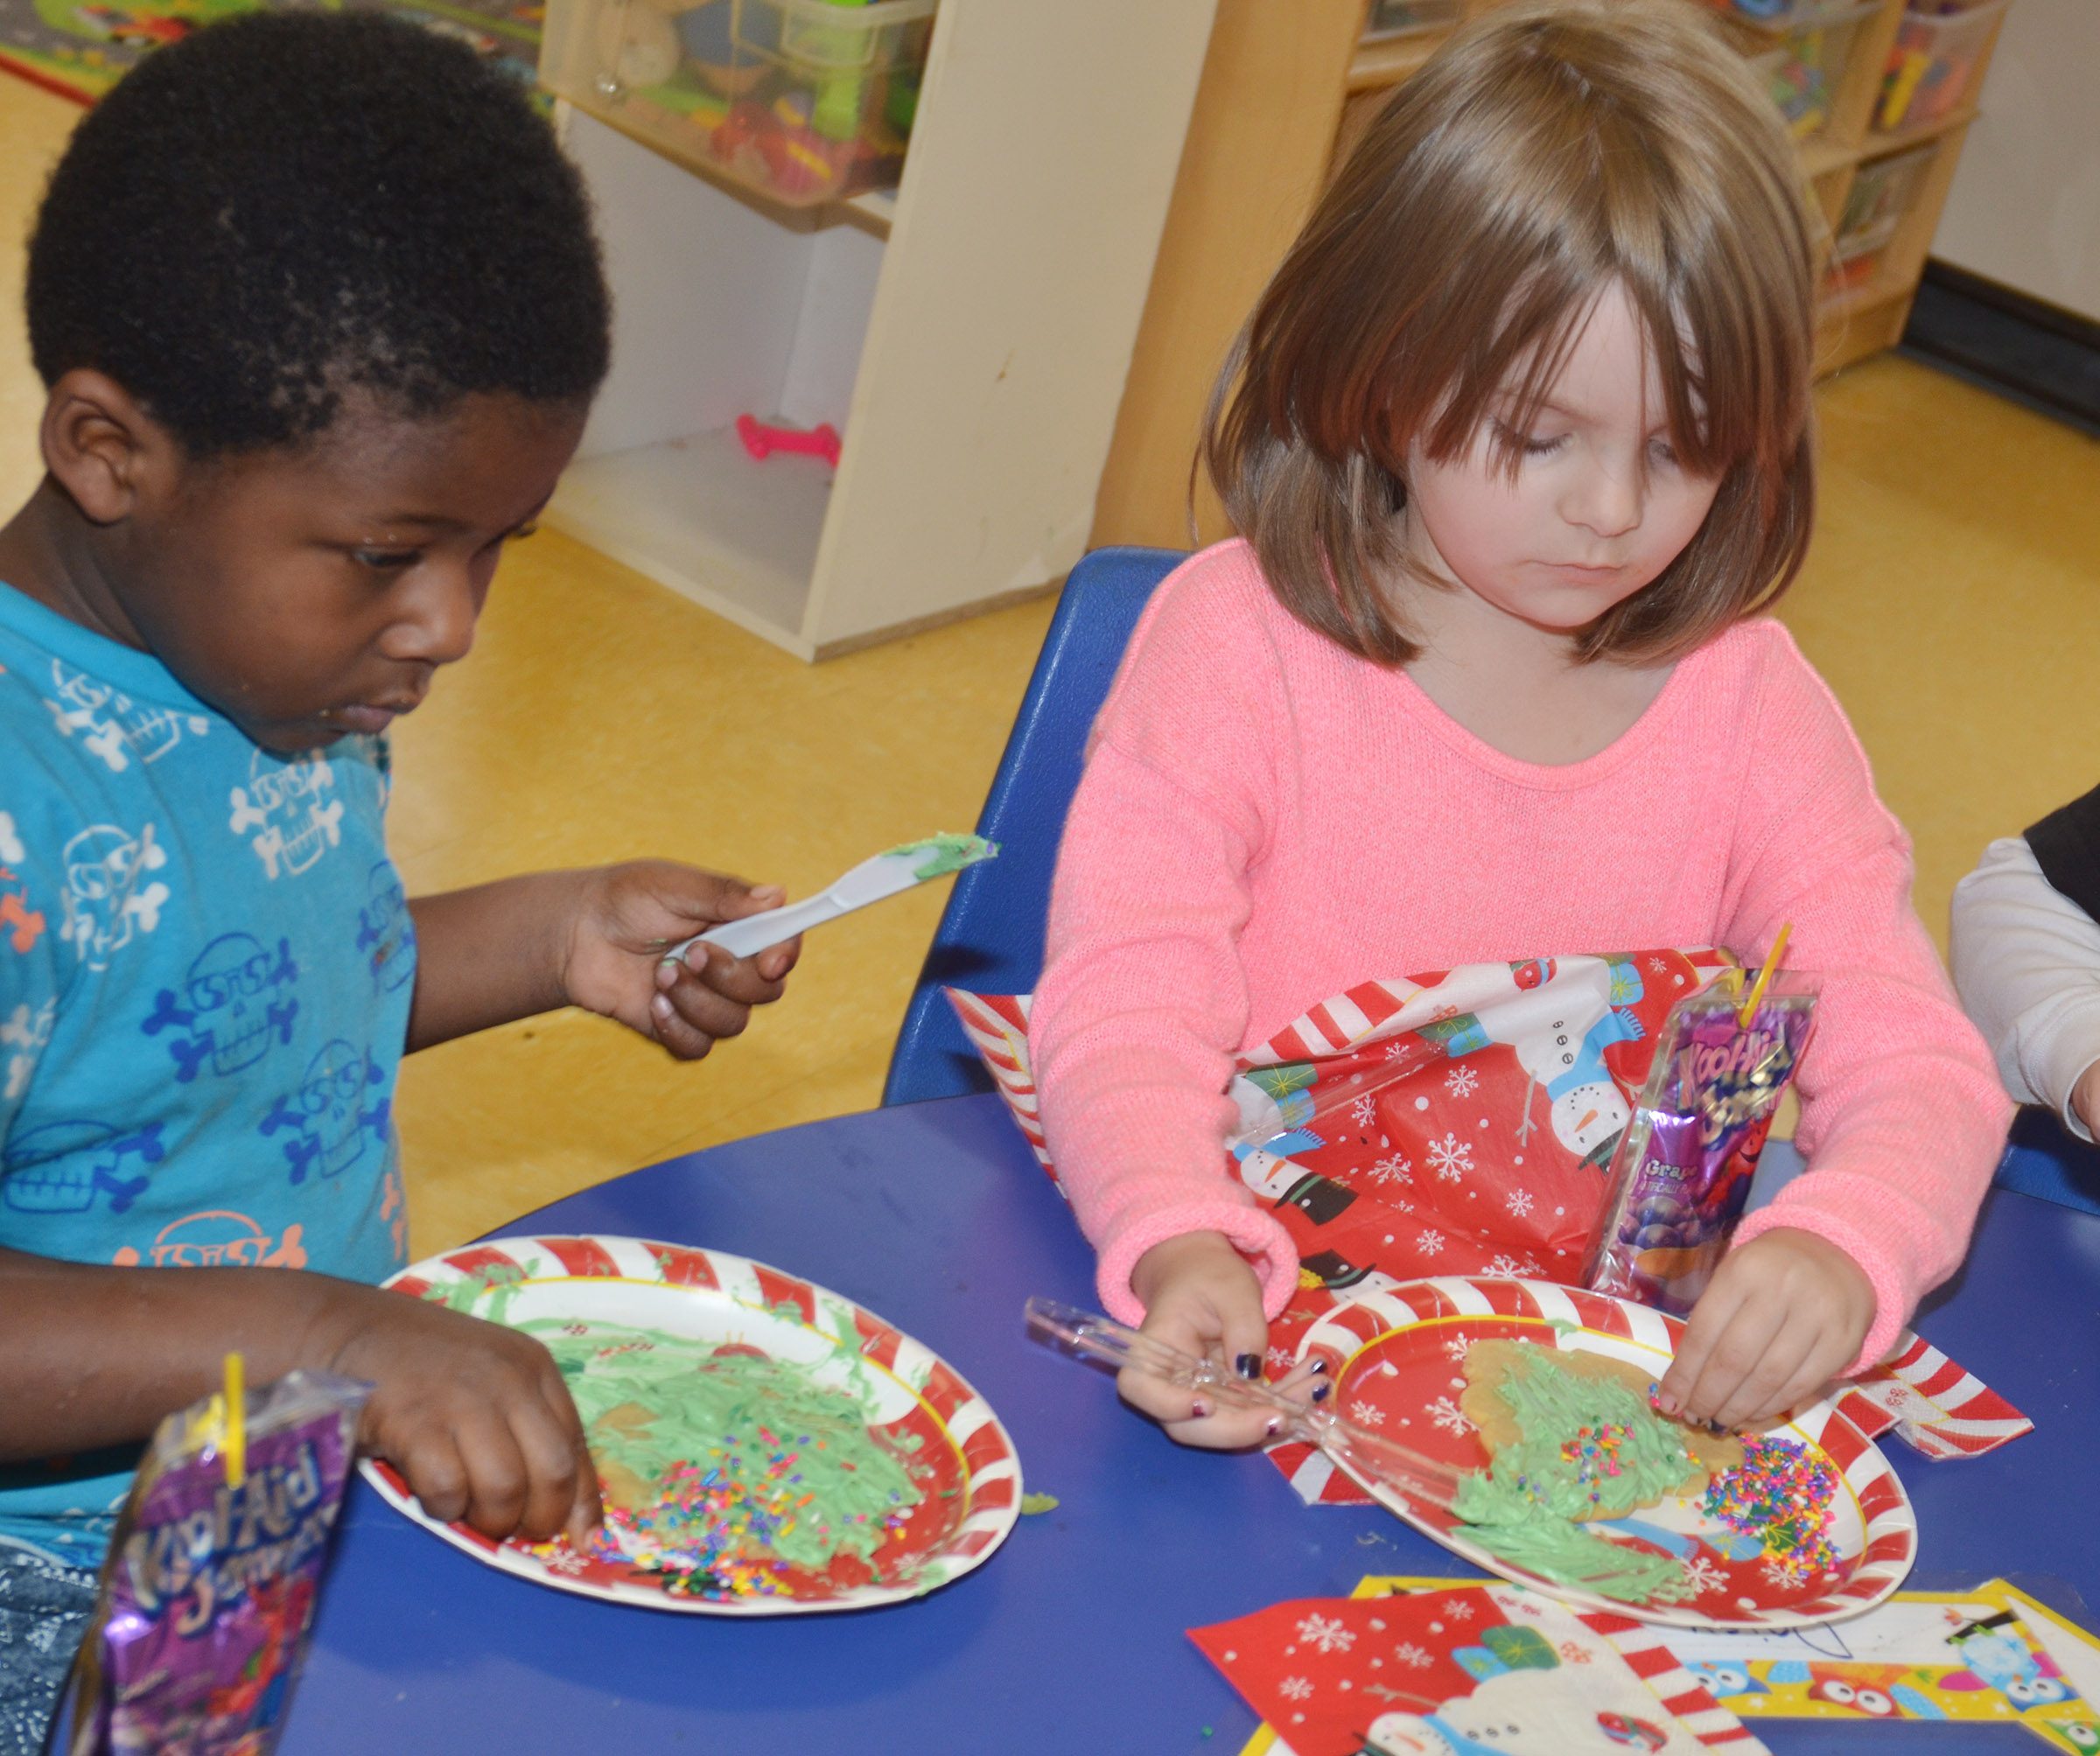 CES preschool students LaTayvion Brown, at left, and Daisy Rakes decorate their cookies.